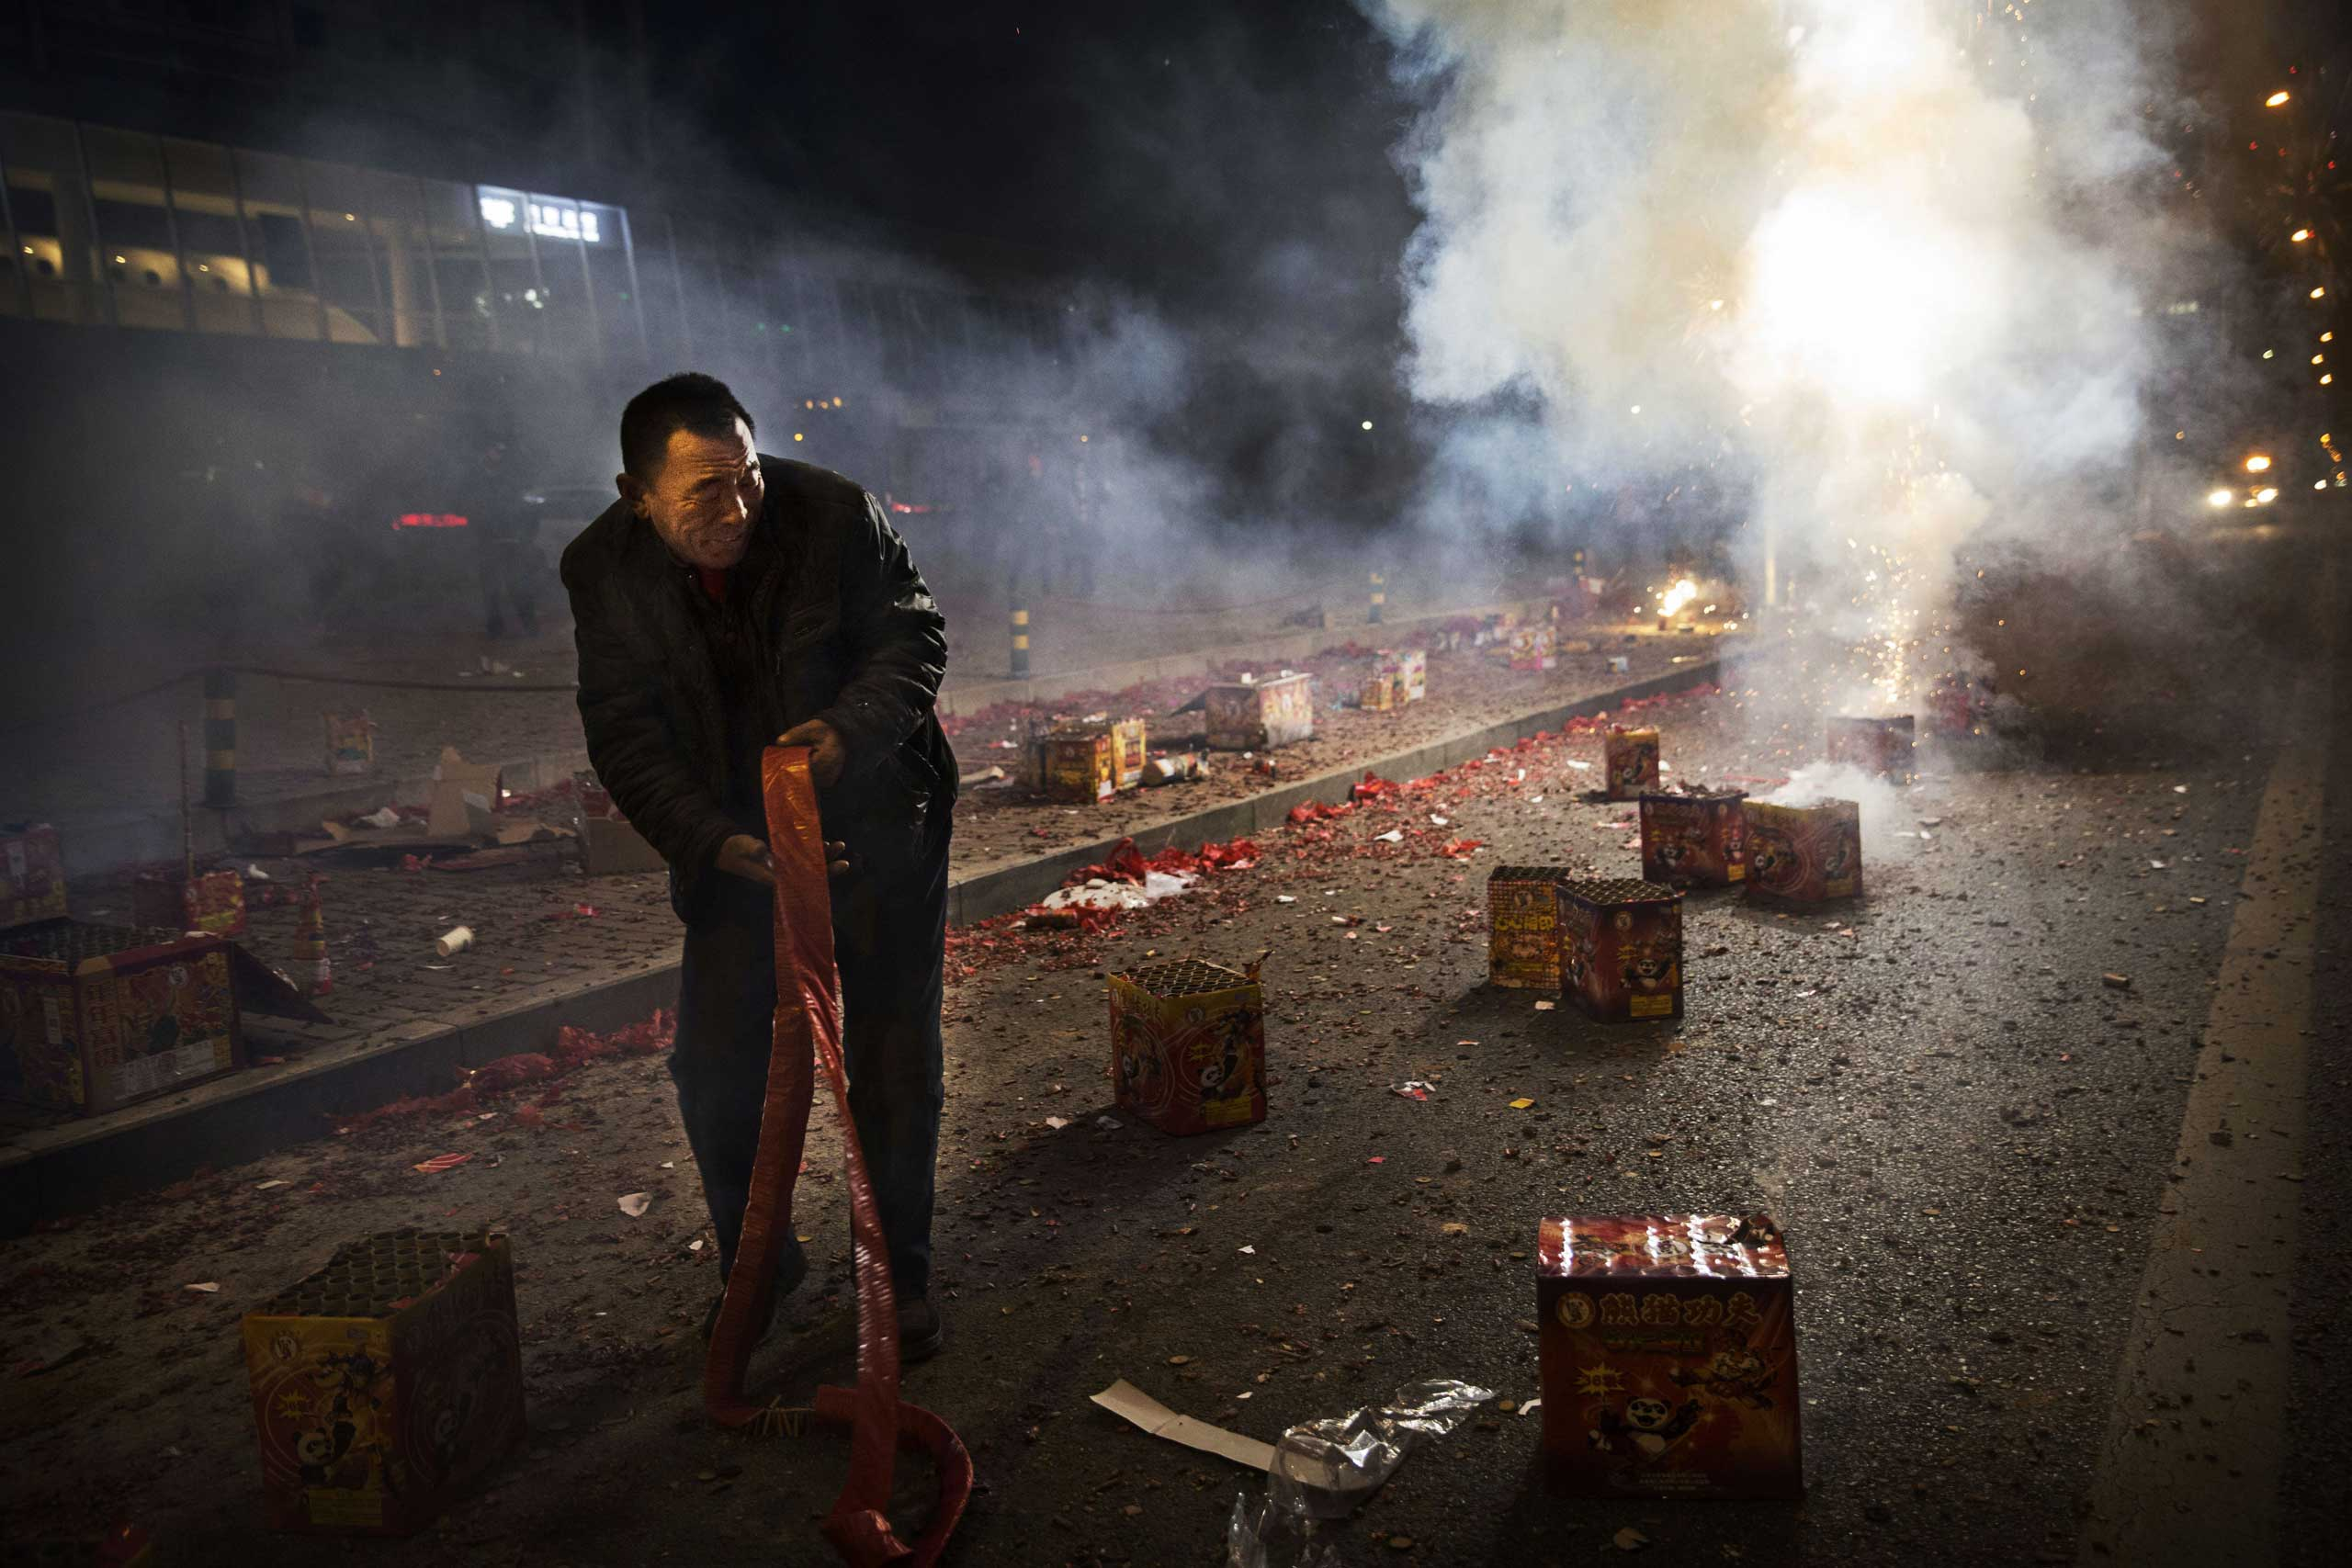 A man reacts as firecrackers he lit explode during celebrations of the Lunar New Year early on Feb. 19, 2015 in Beijing.